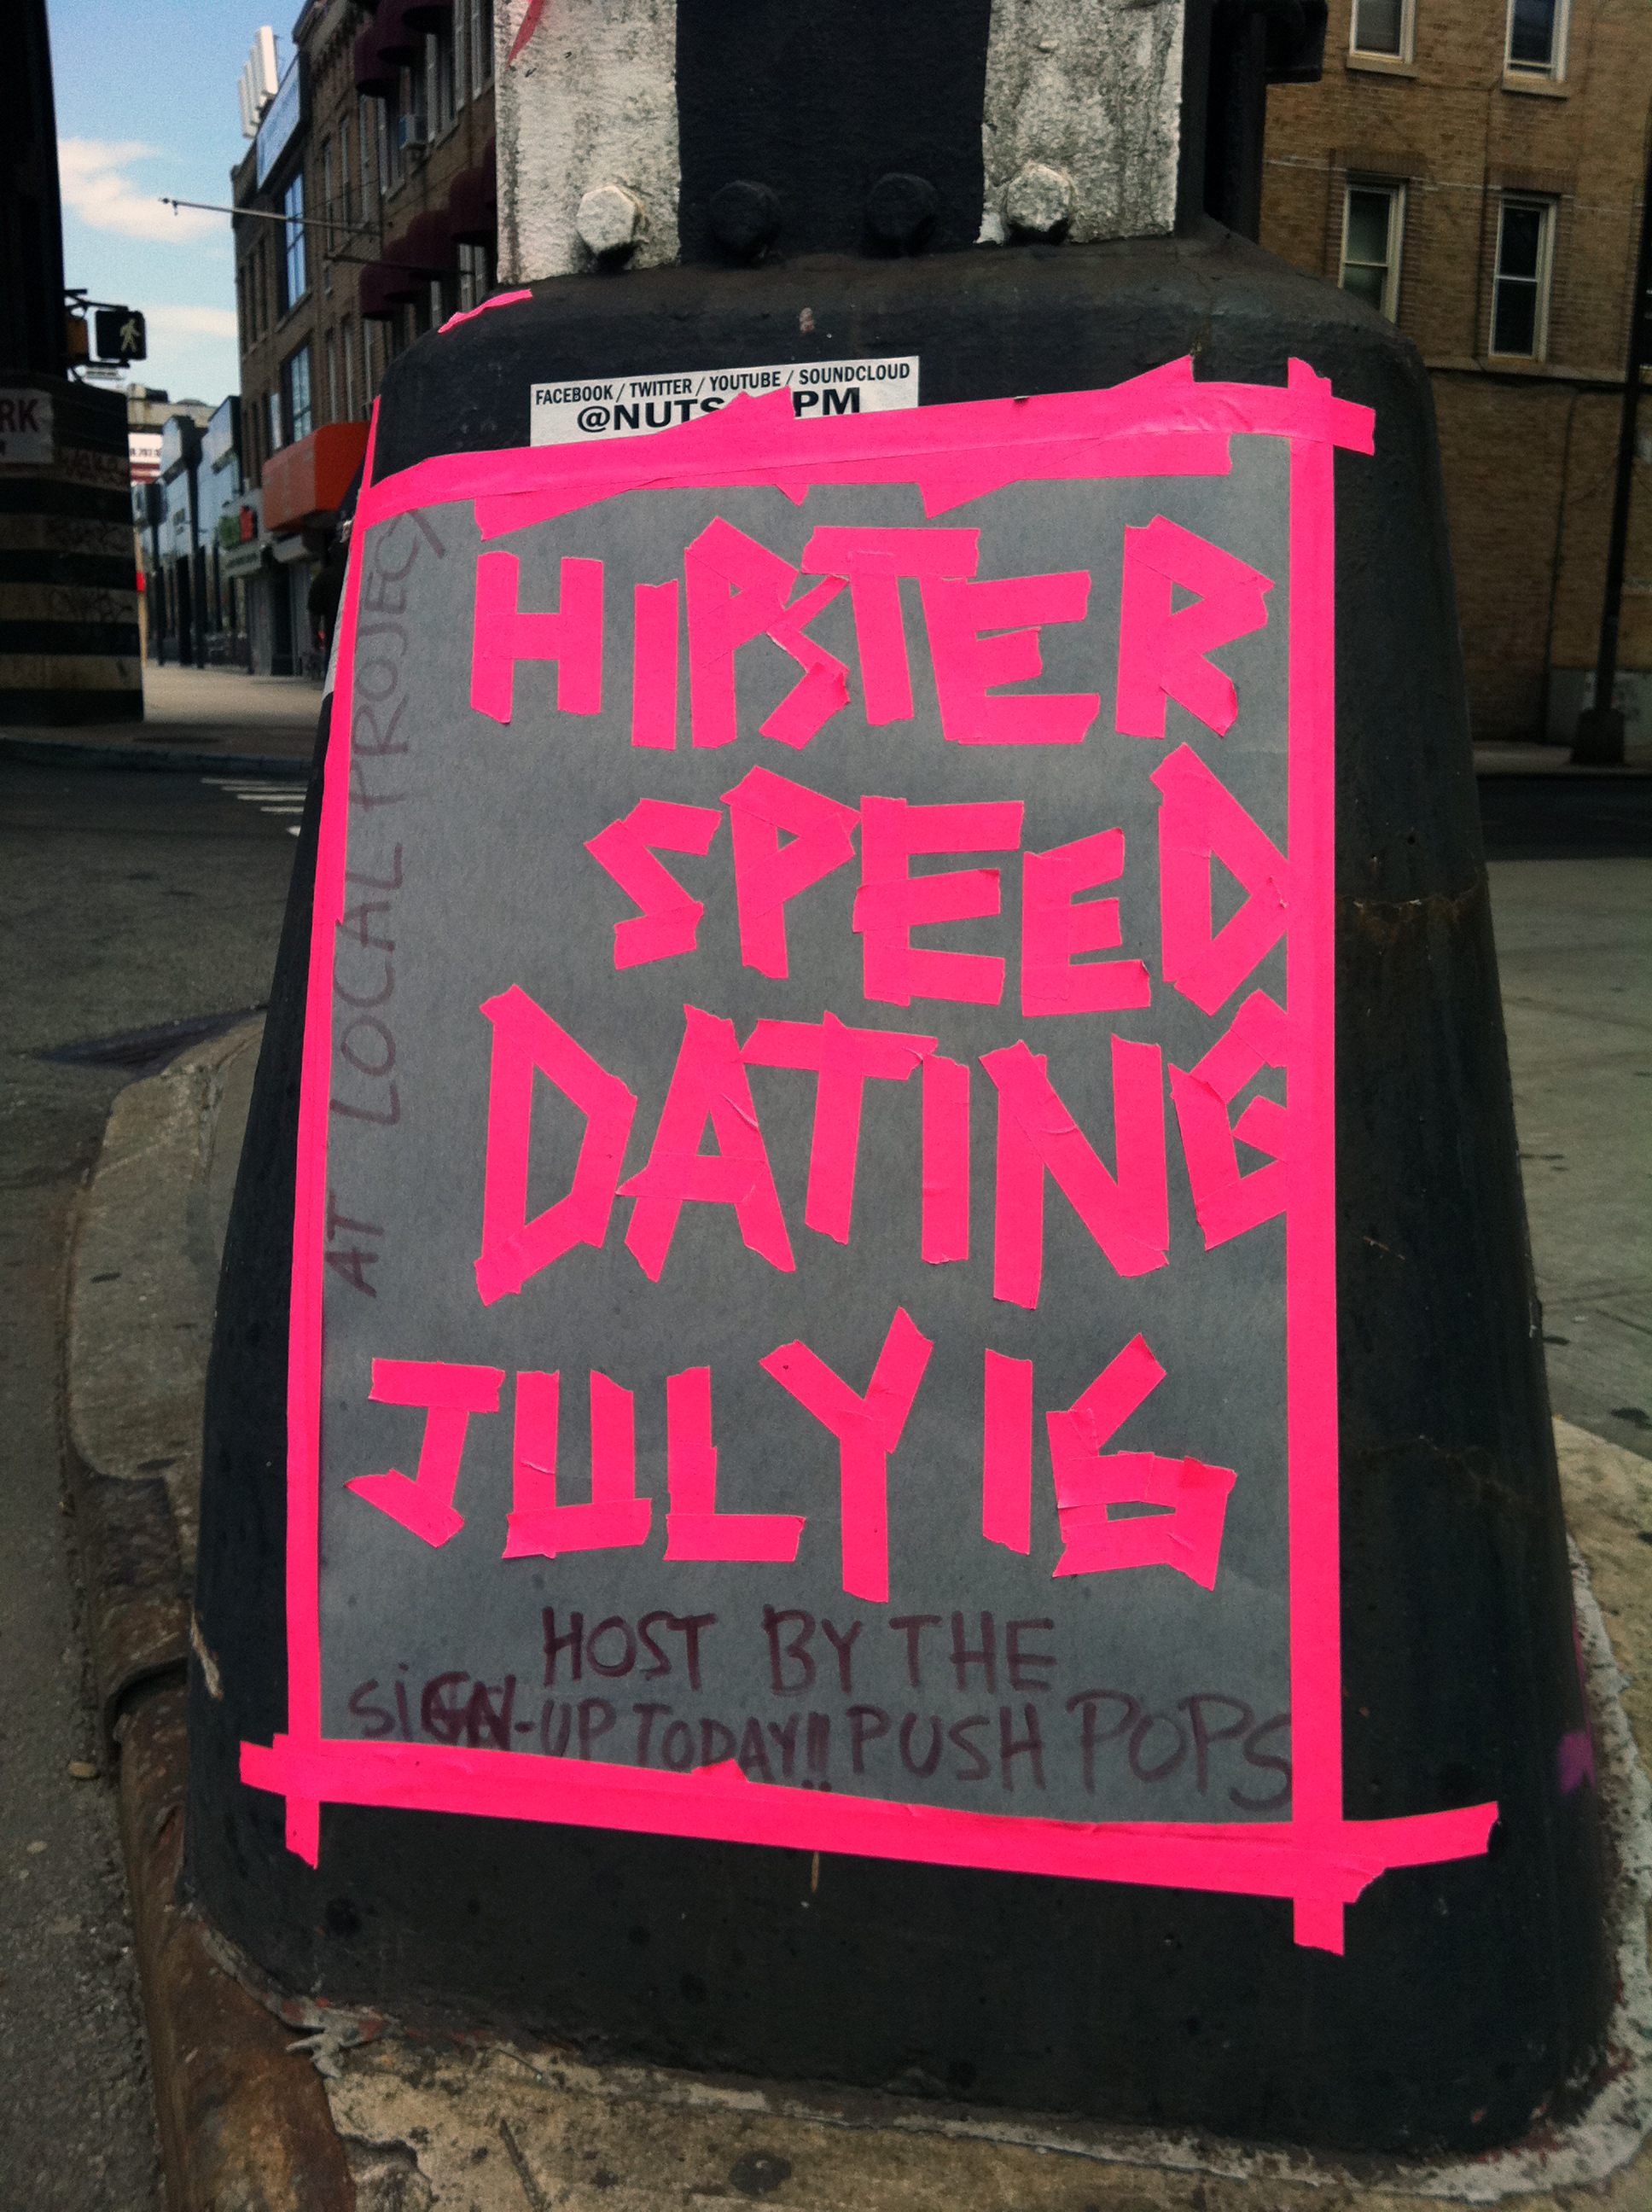 from Sonny hipster speed dating